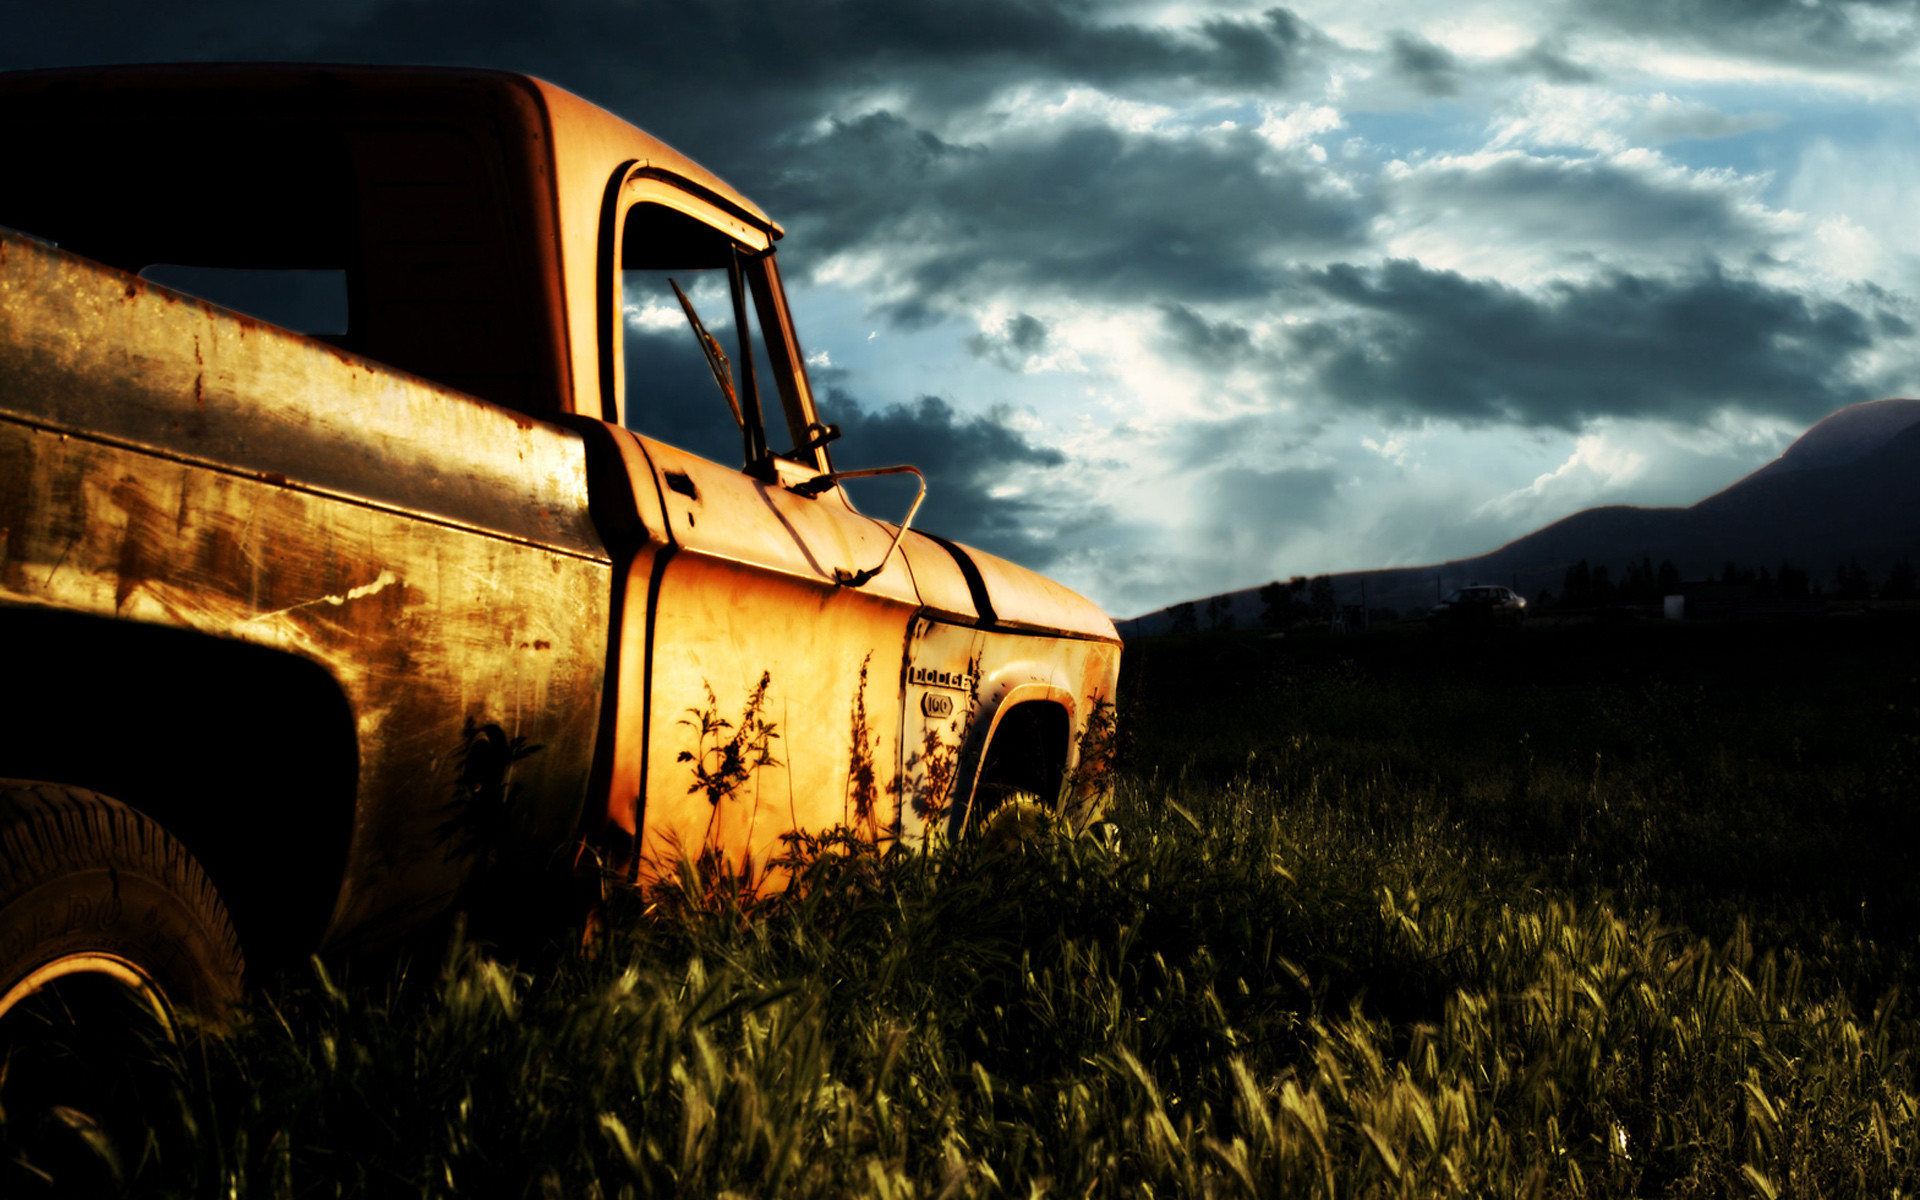 1920x1200 wallpaper.wiki-Rusty-Old-Car-Cool-Backgrounds-Wallpapers-